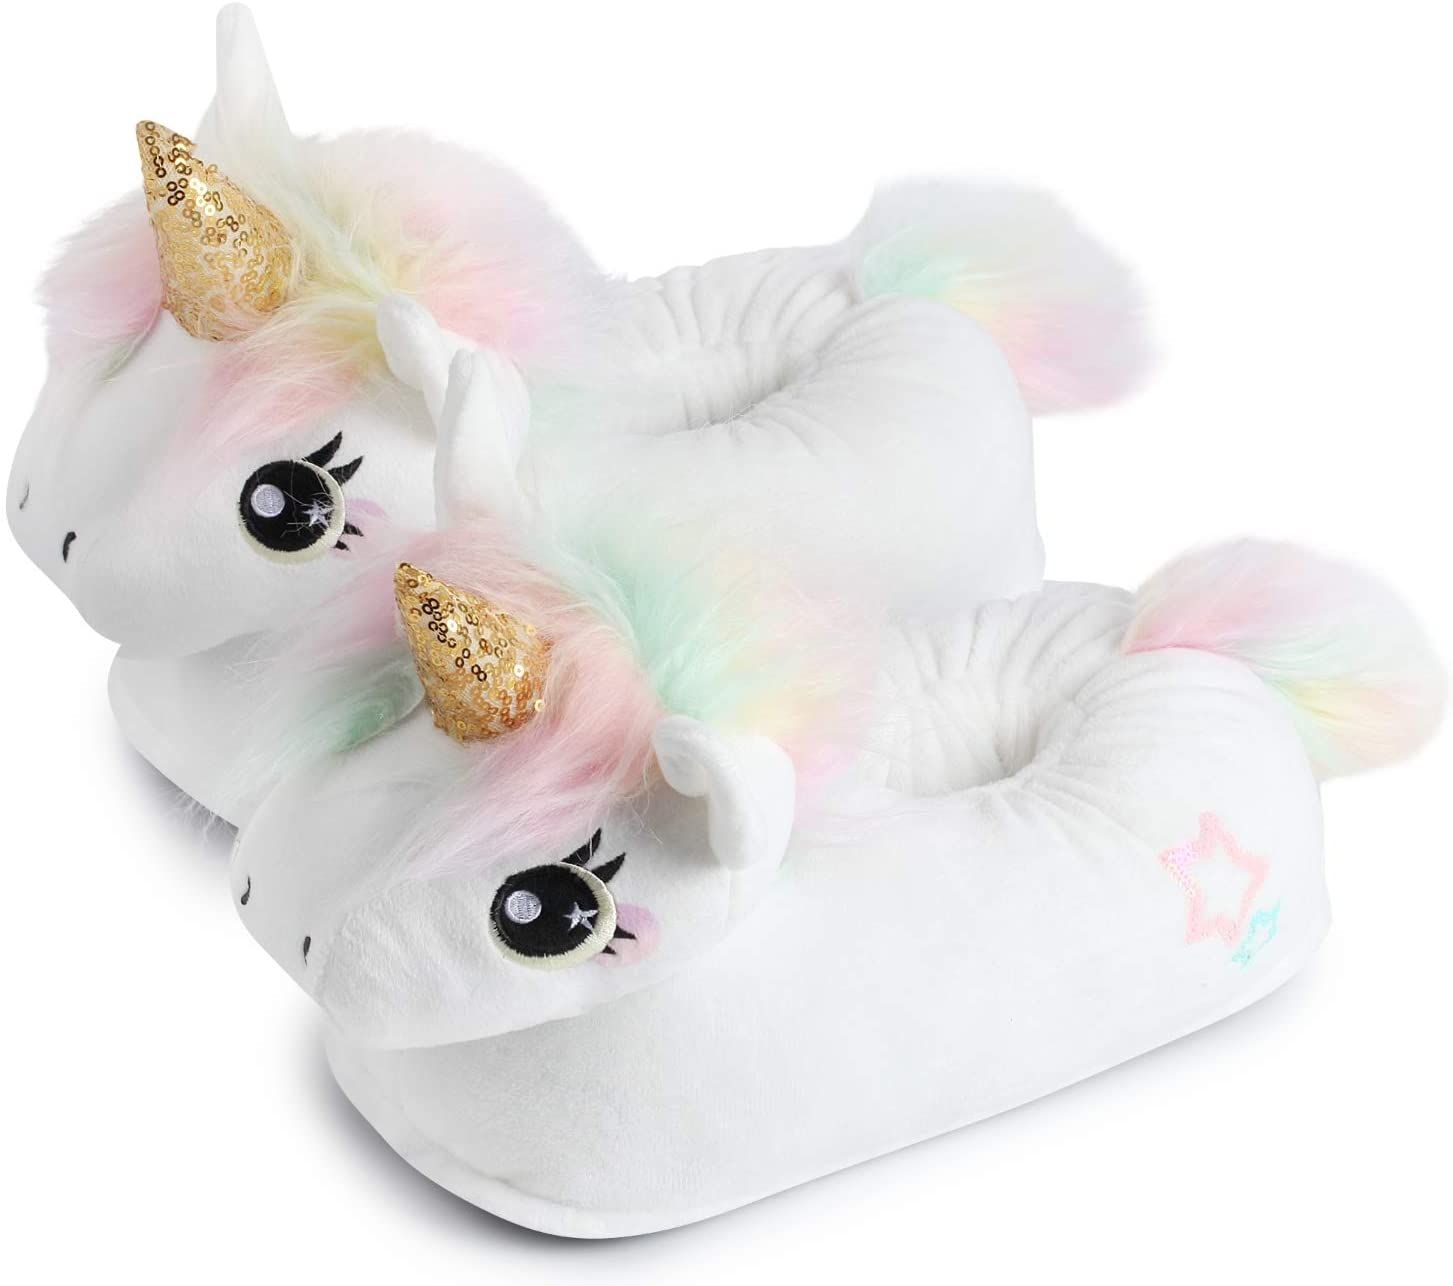 Photo of corimori (20+ designs) Pantofole Peluche Animali Donna Uomo Bambini, Taglia Unica 34-44, Unicorno Nero, 1847